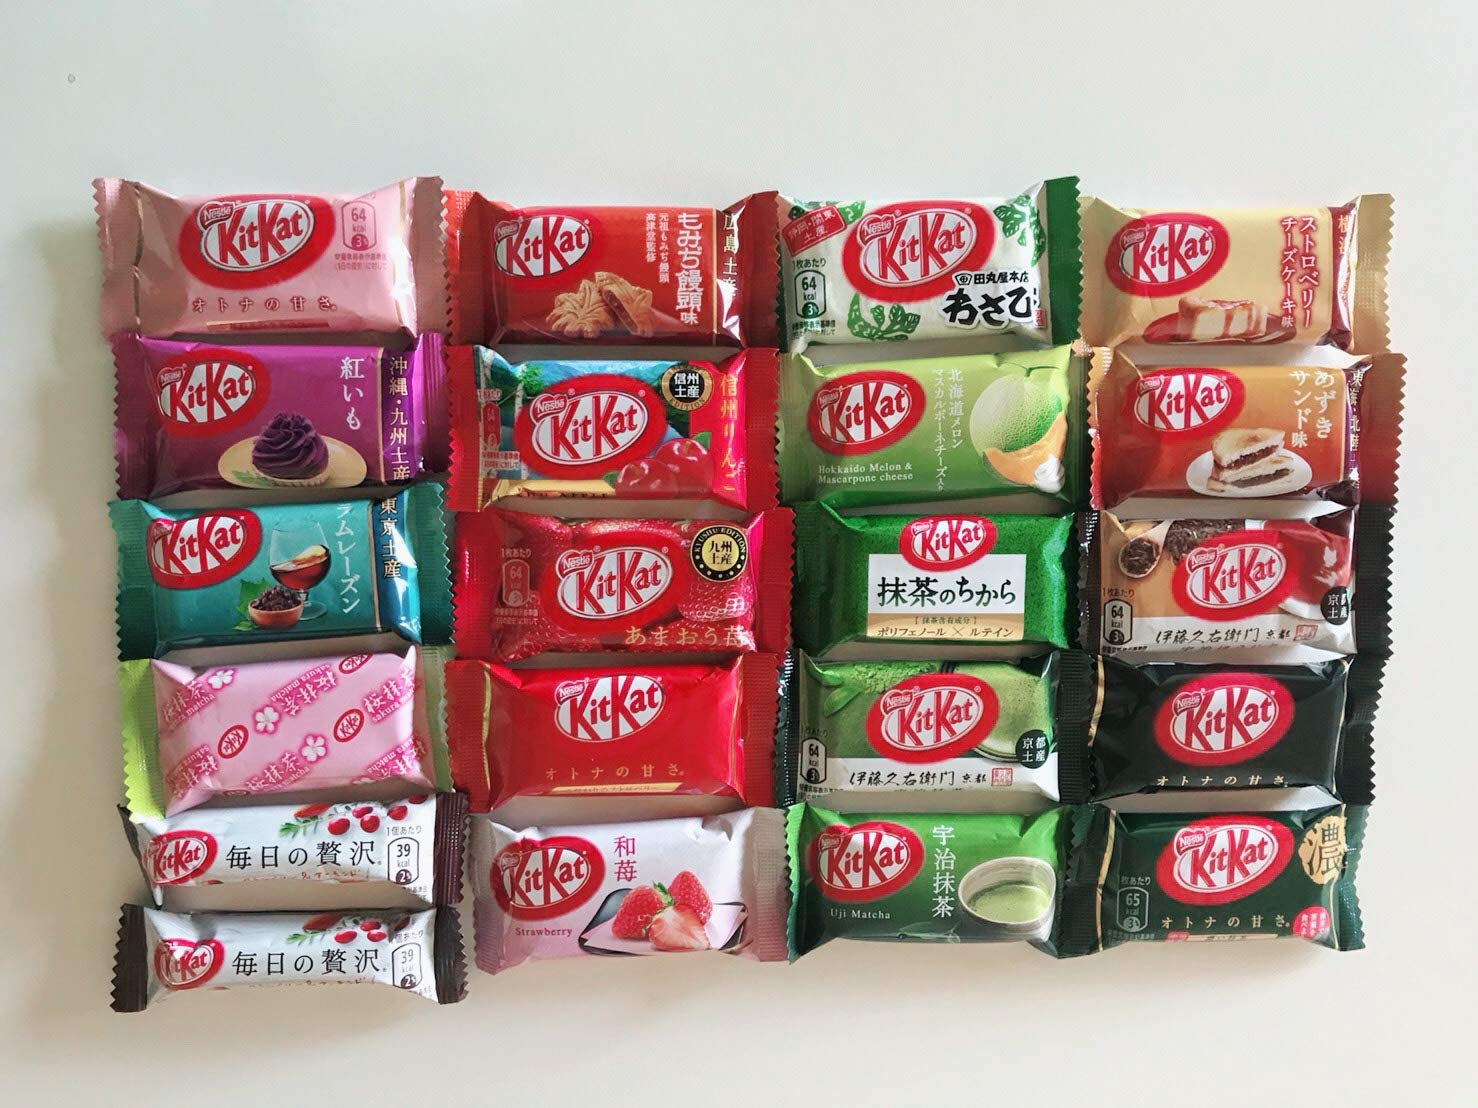 Japanese Kit Kat Mini Bar 21 pcs , ALL DIFFERENT FLAVORS Assortments (original green tea set)